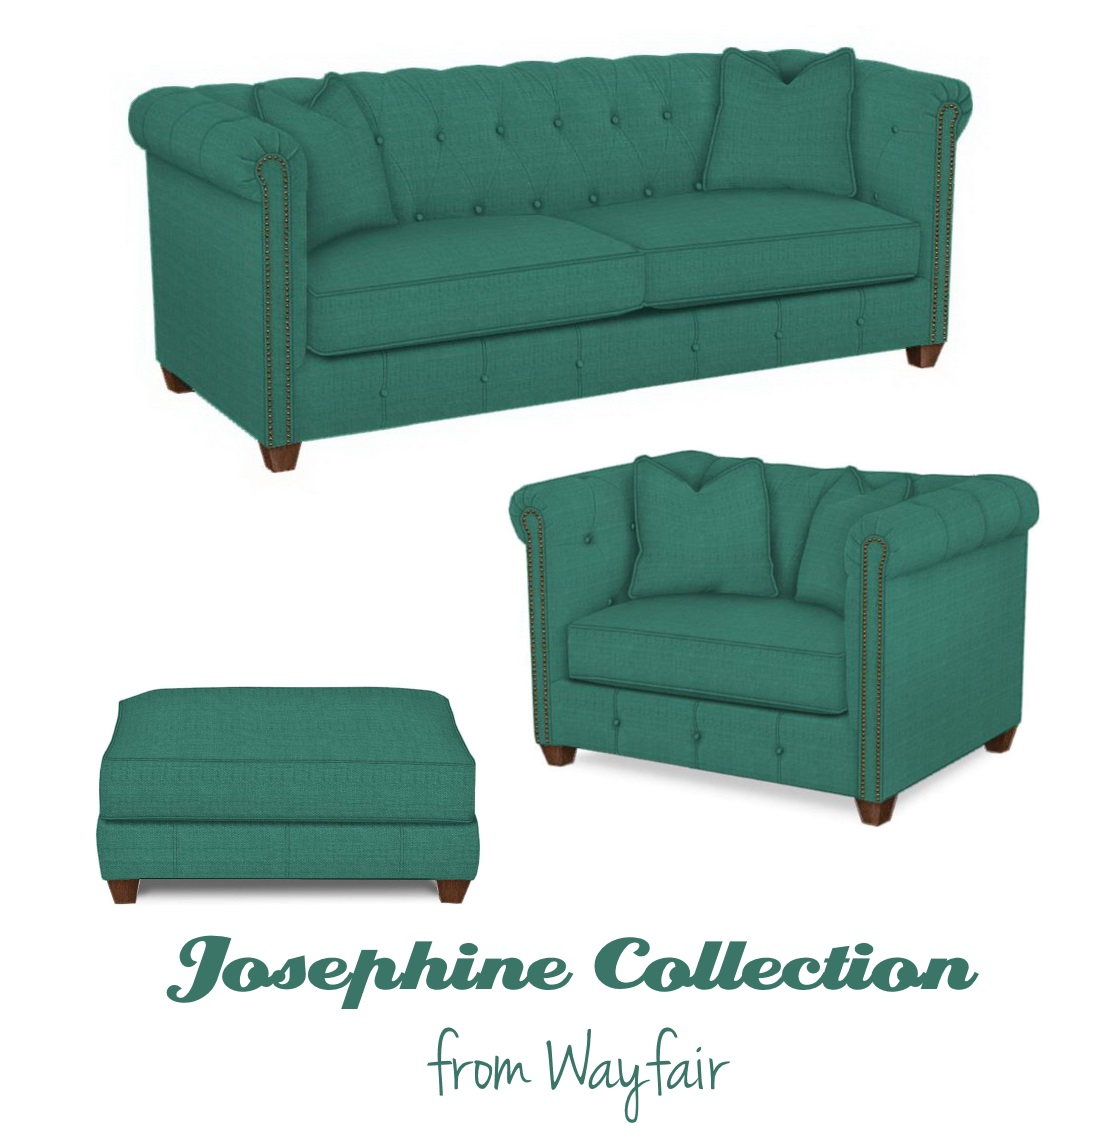 New Custom Upholstery Sofa Sets from Wayfair Let you Totally Personalize Your Furniture